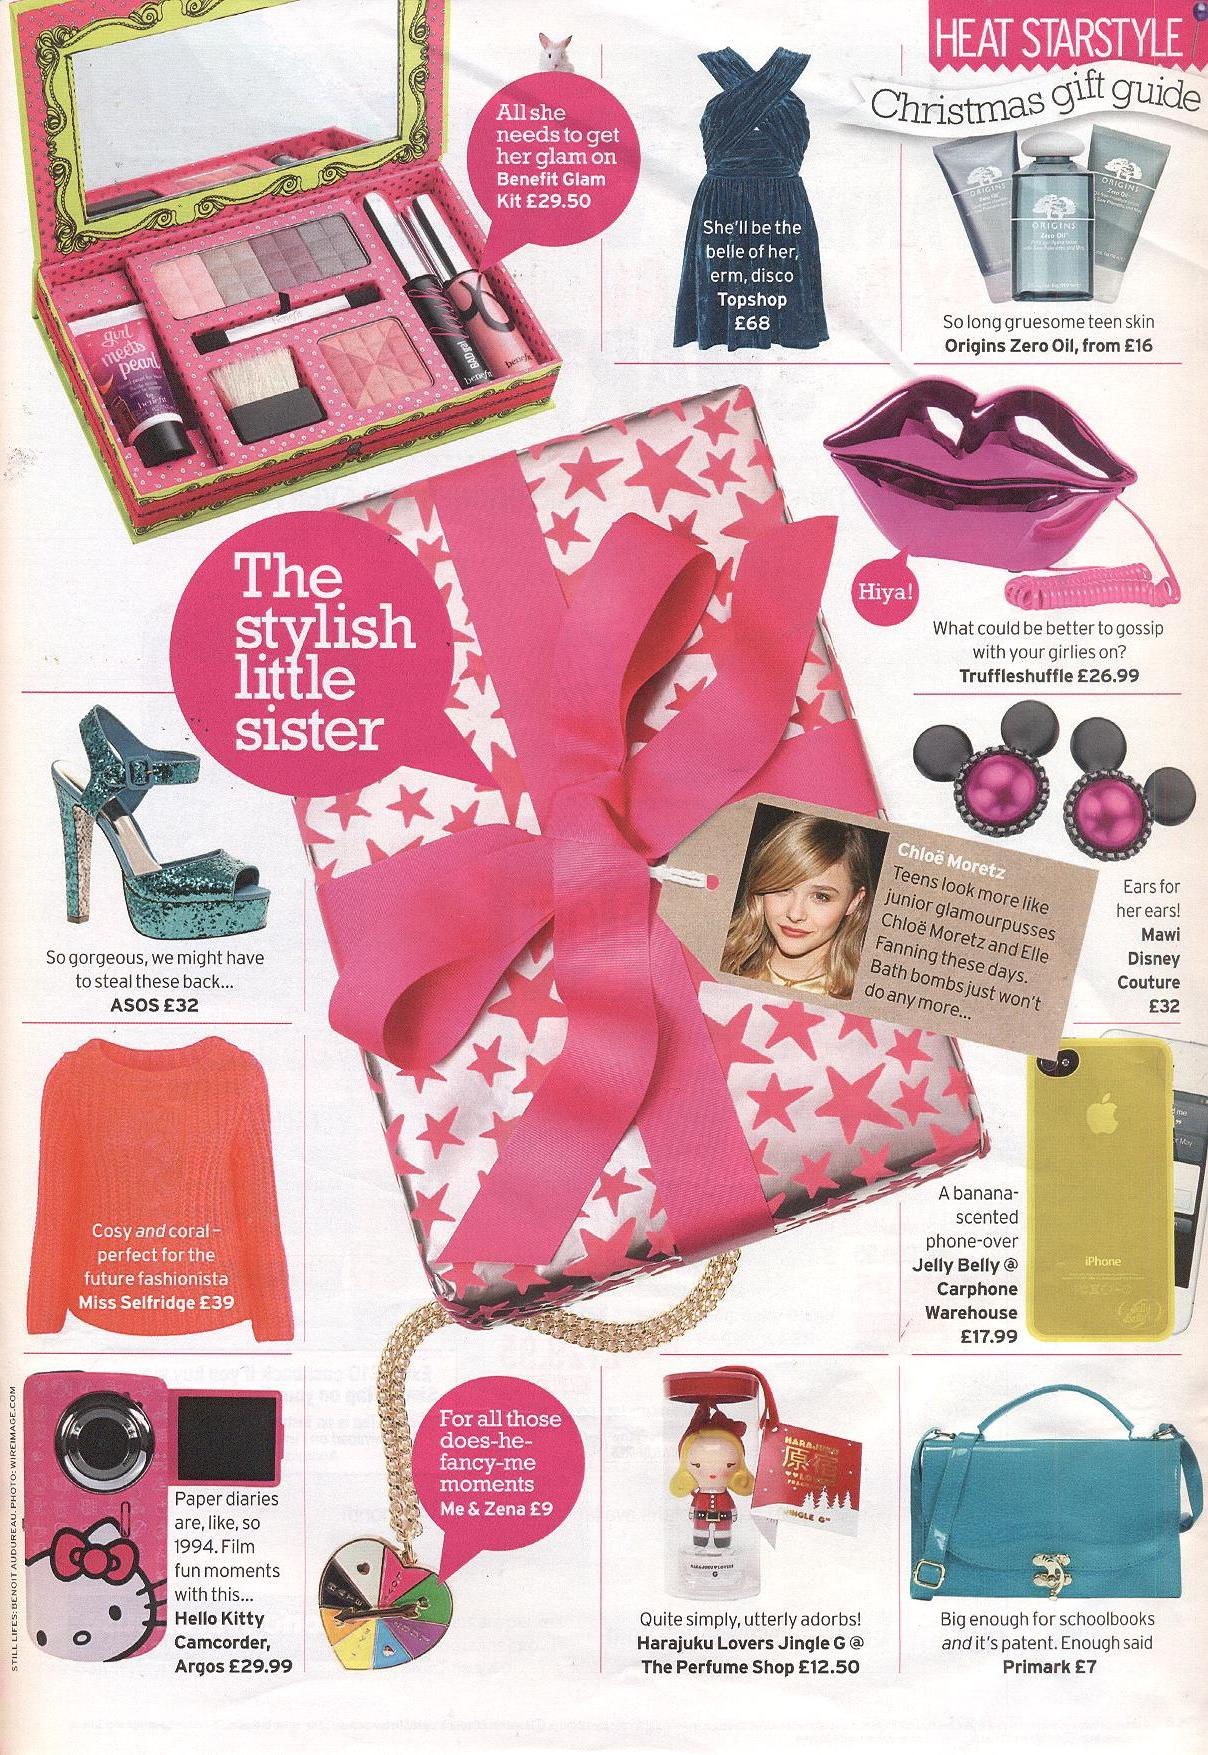 Heat Magazine 2011 Christmas Gift Guide 29.11.2011